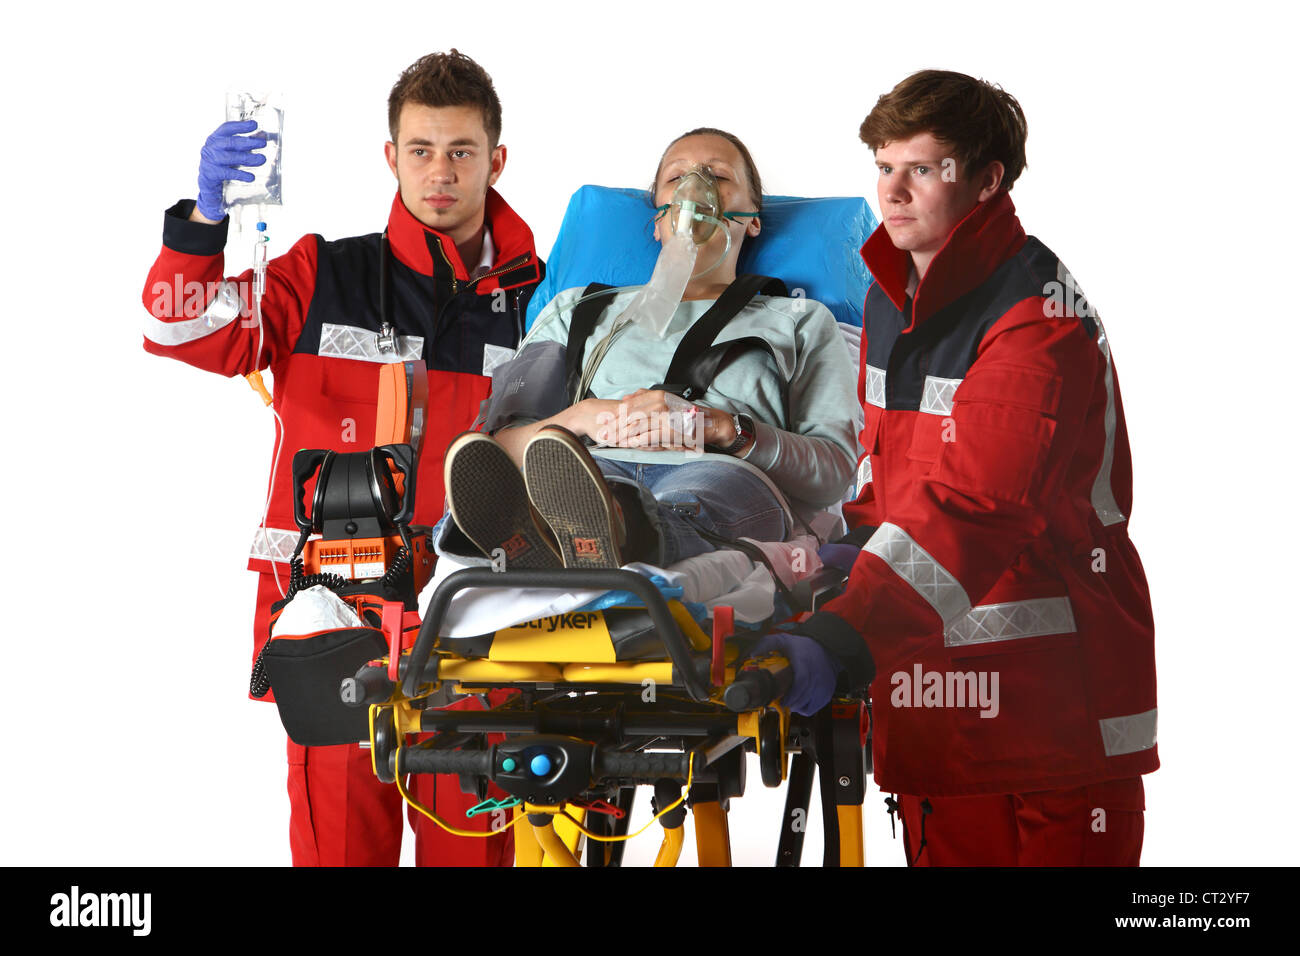 Fire service paramedics, with emergency equipment. - Stock Image